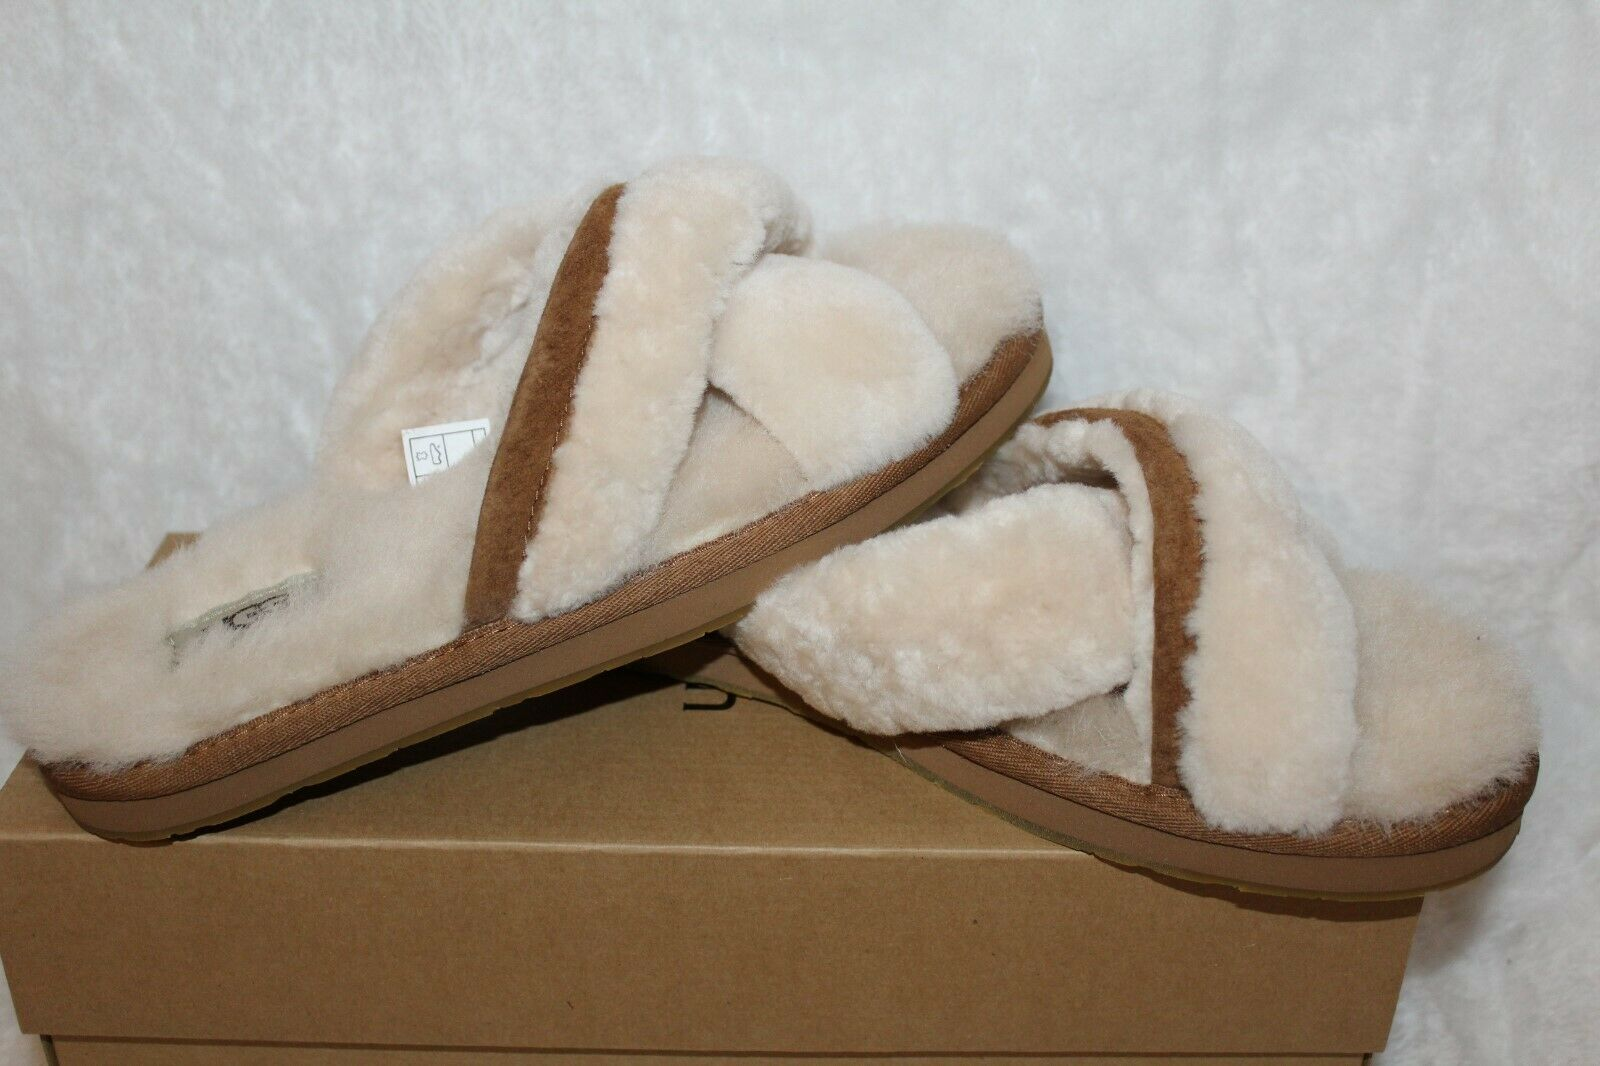 NEW Authentic UGG Womens Abela Soft Fluffy Slide Slippers Shoes Natural  1